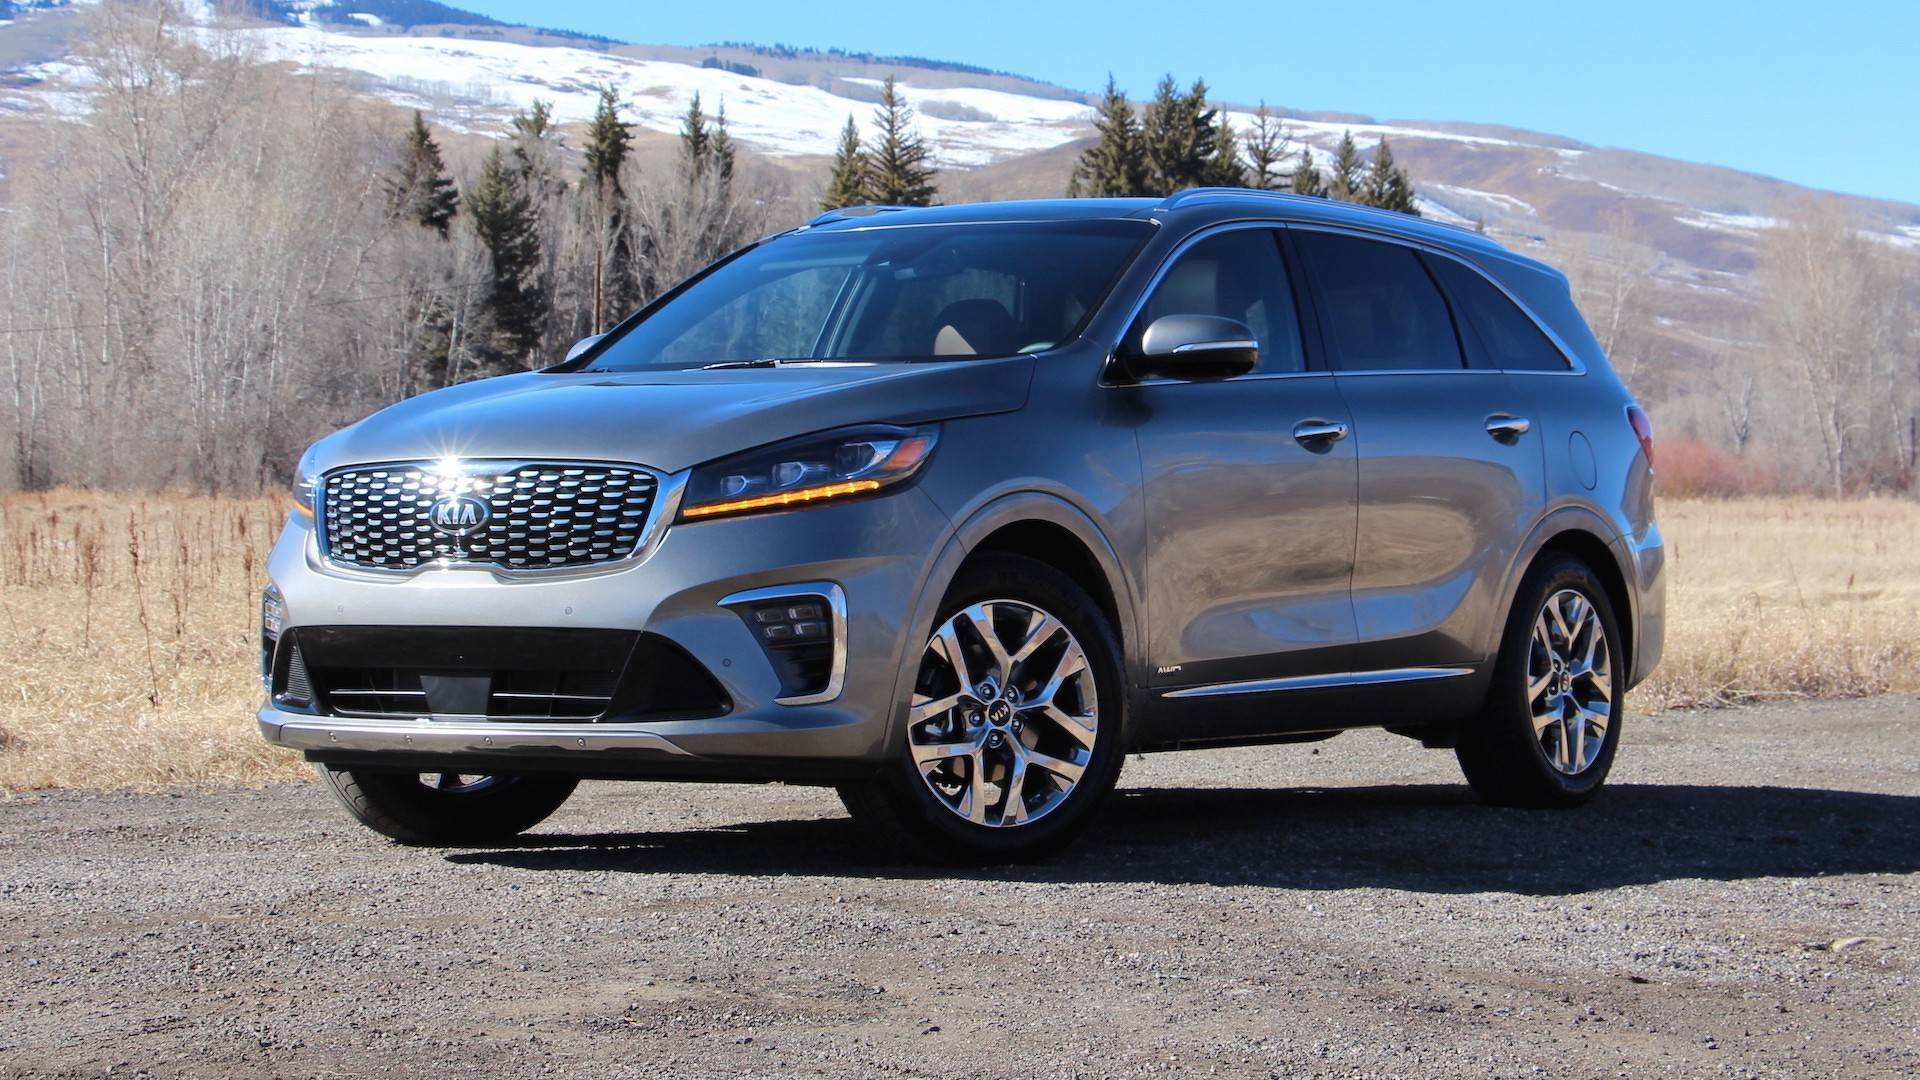 11 All New 2019 Kia Sorento Price Design And Review